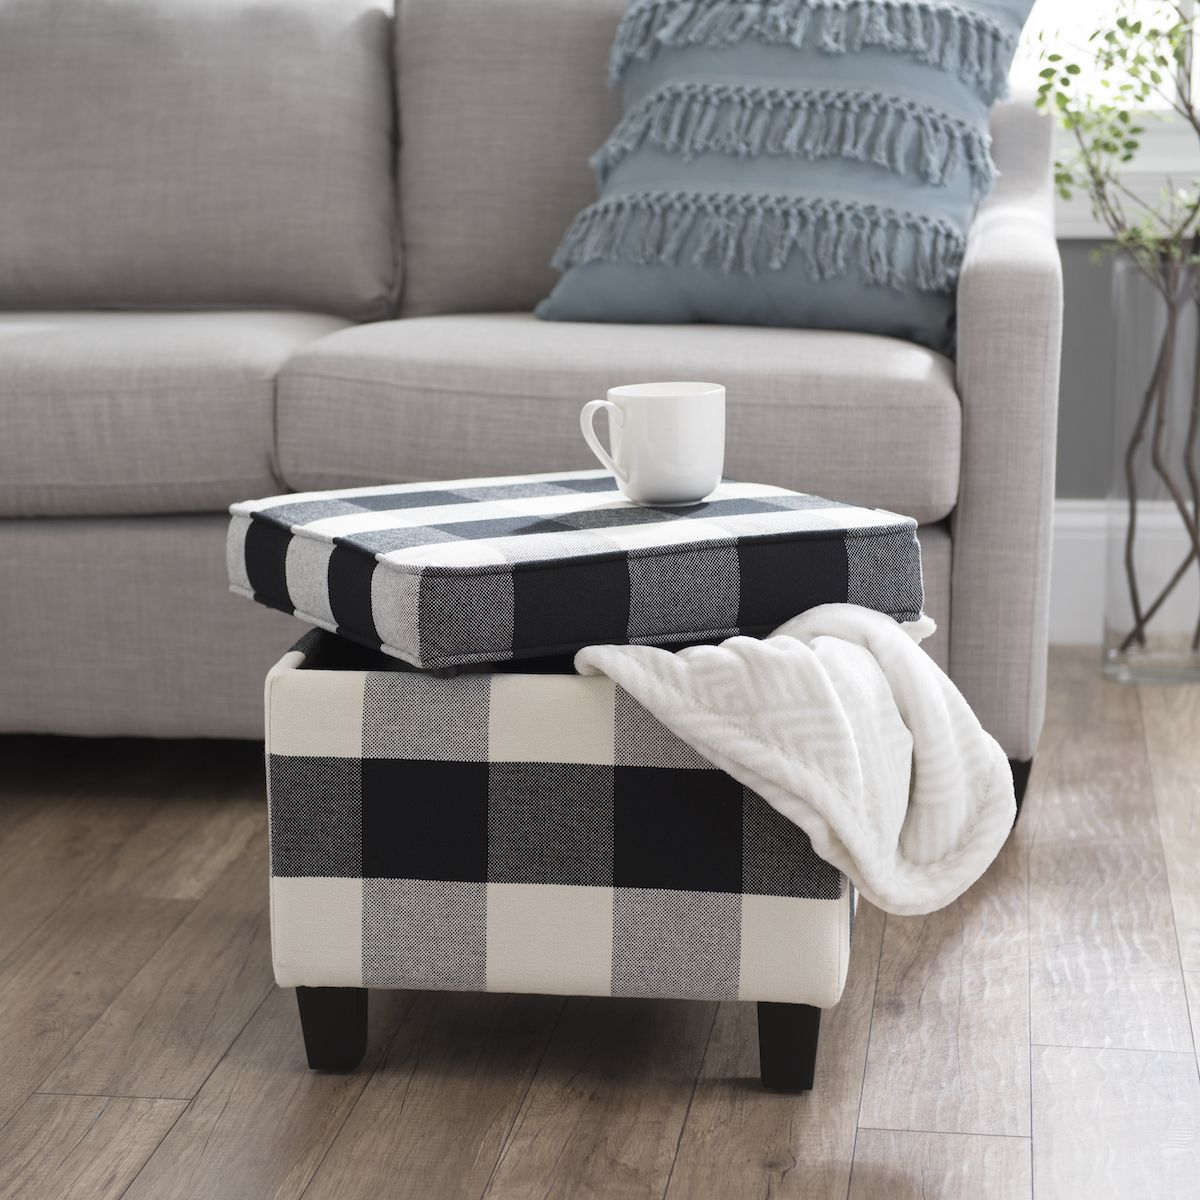 Our Black Buffalo Check Storage Bench Features A Simple, Functional Design  And A Trendy Pattern.